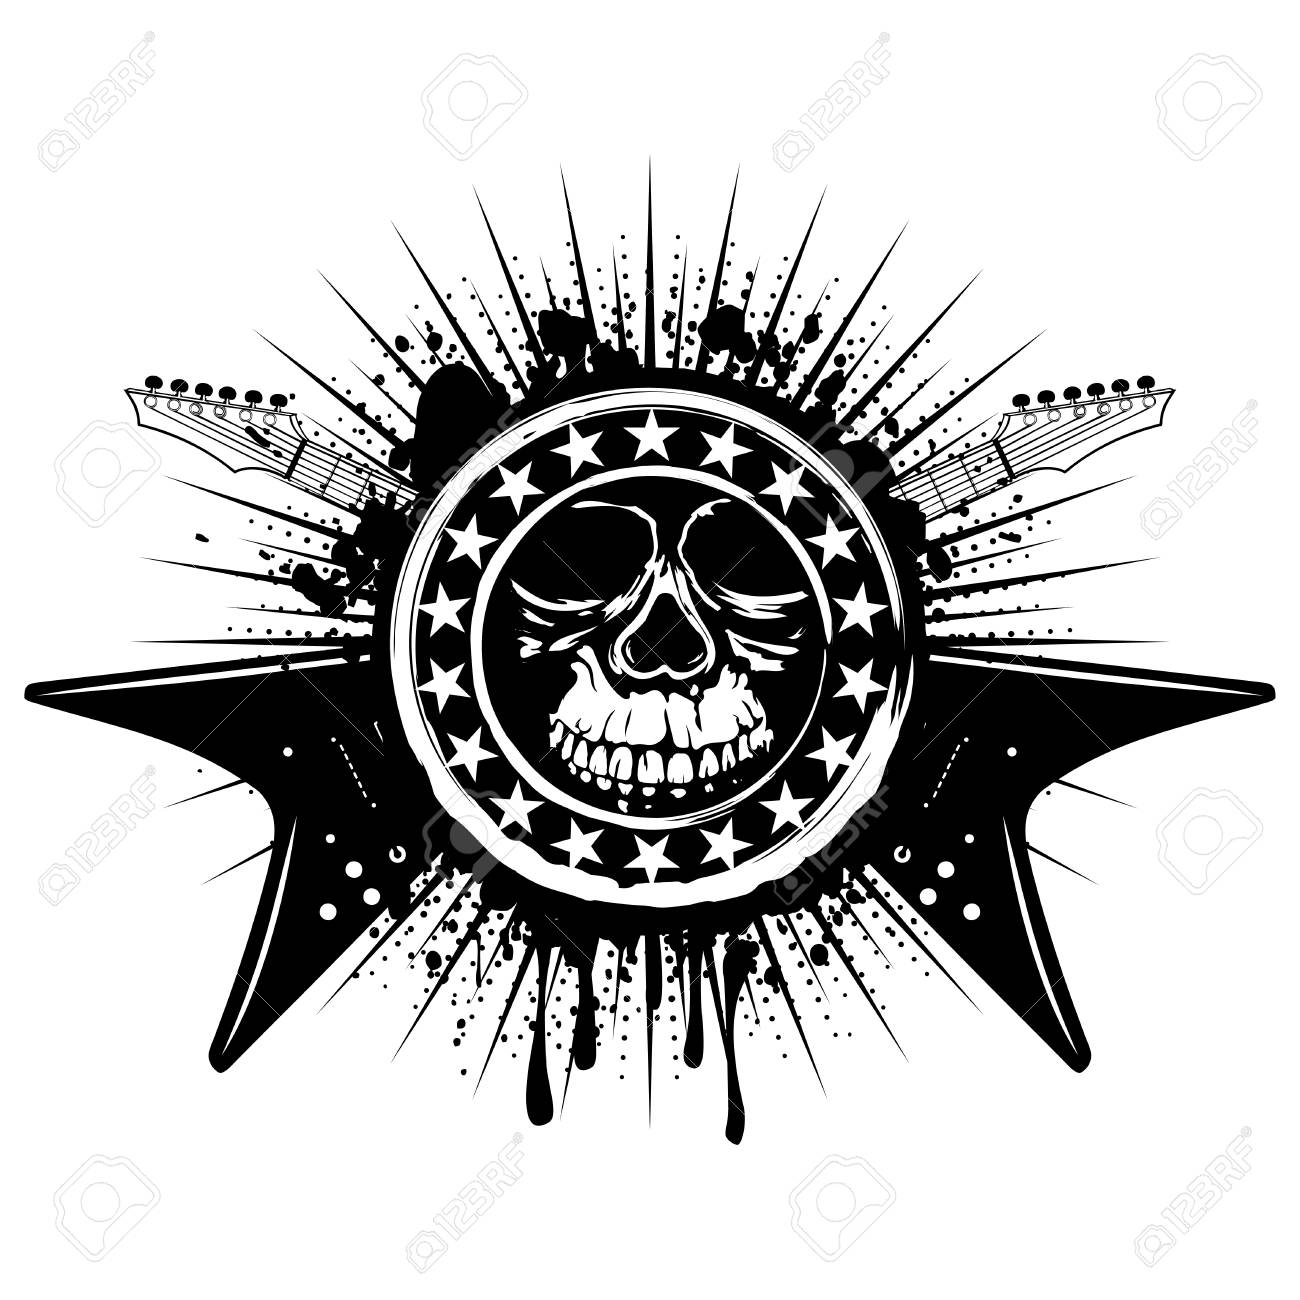 Vector Illustration Grunge Skull Stamp With Stars And Crossed